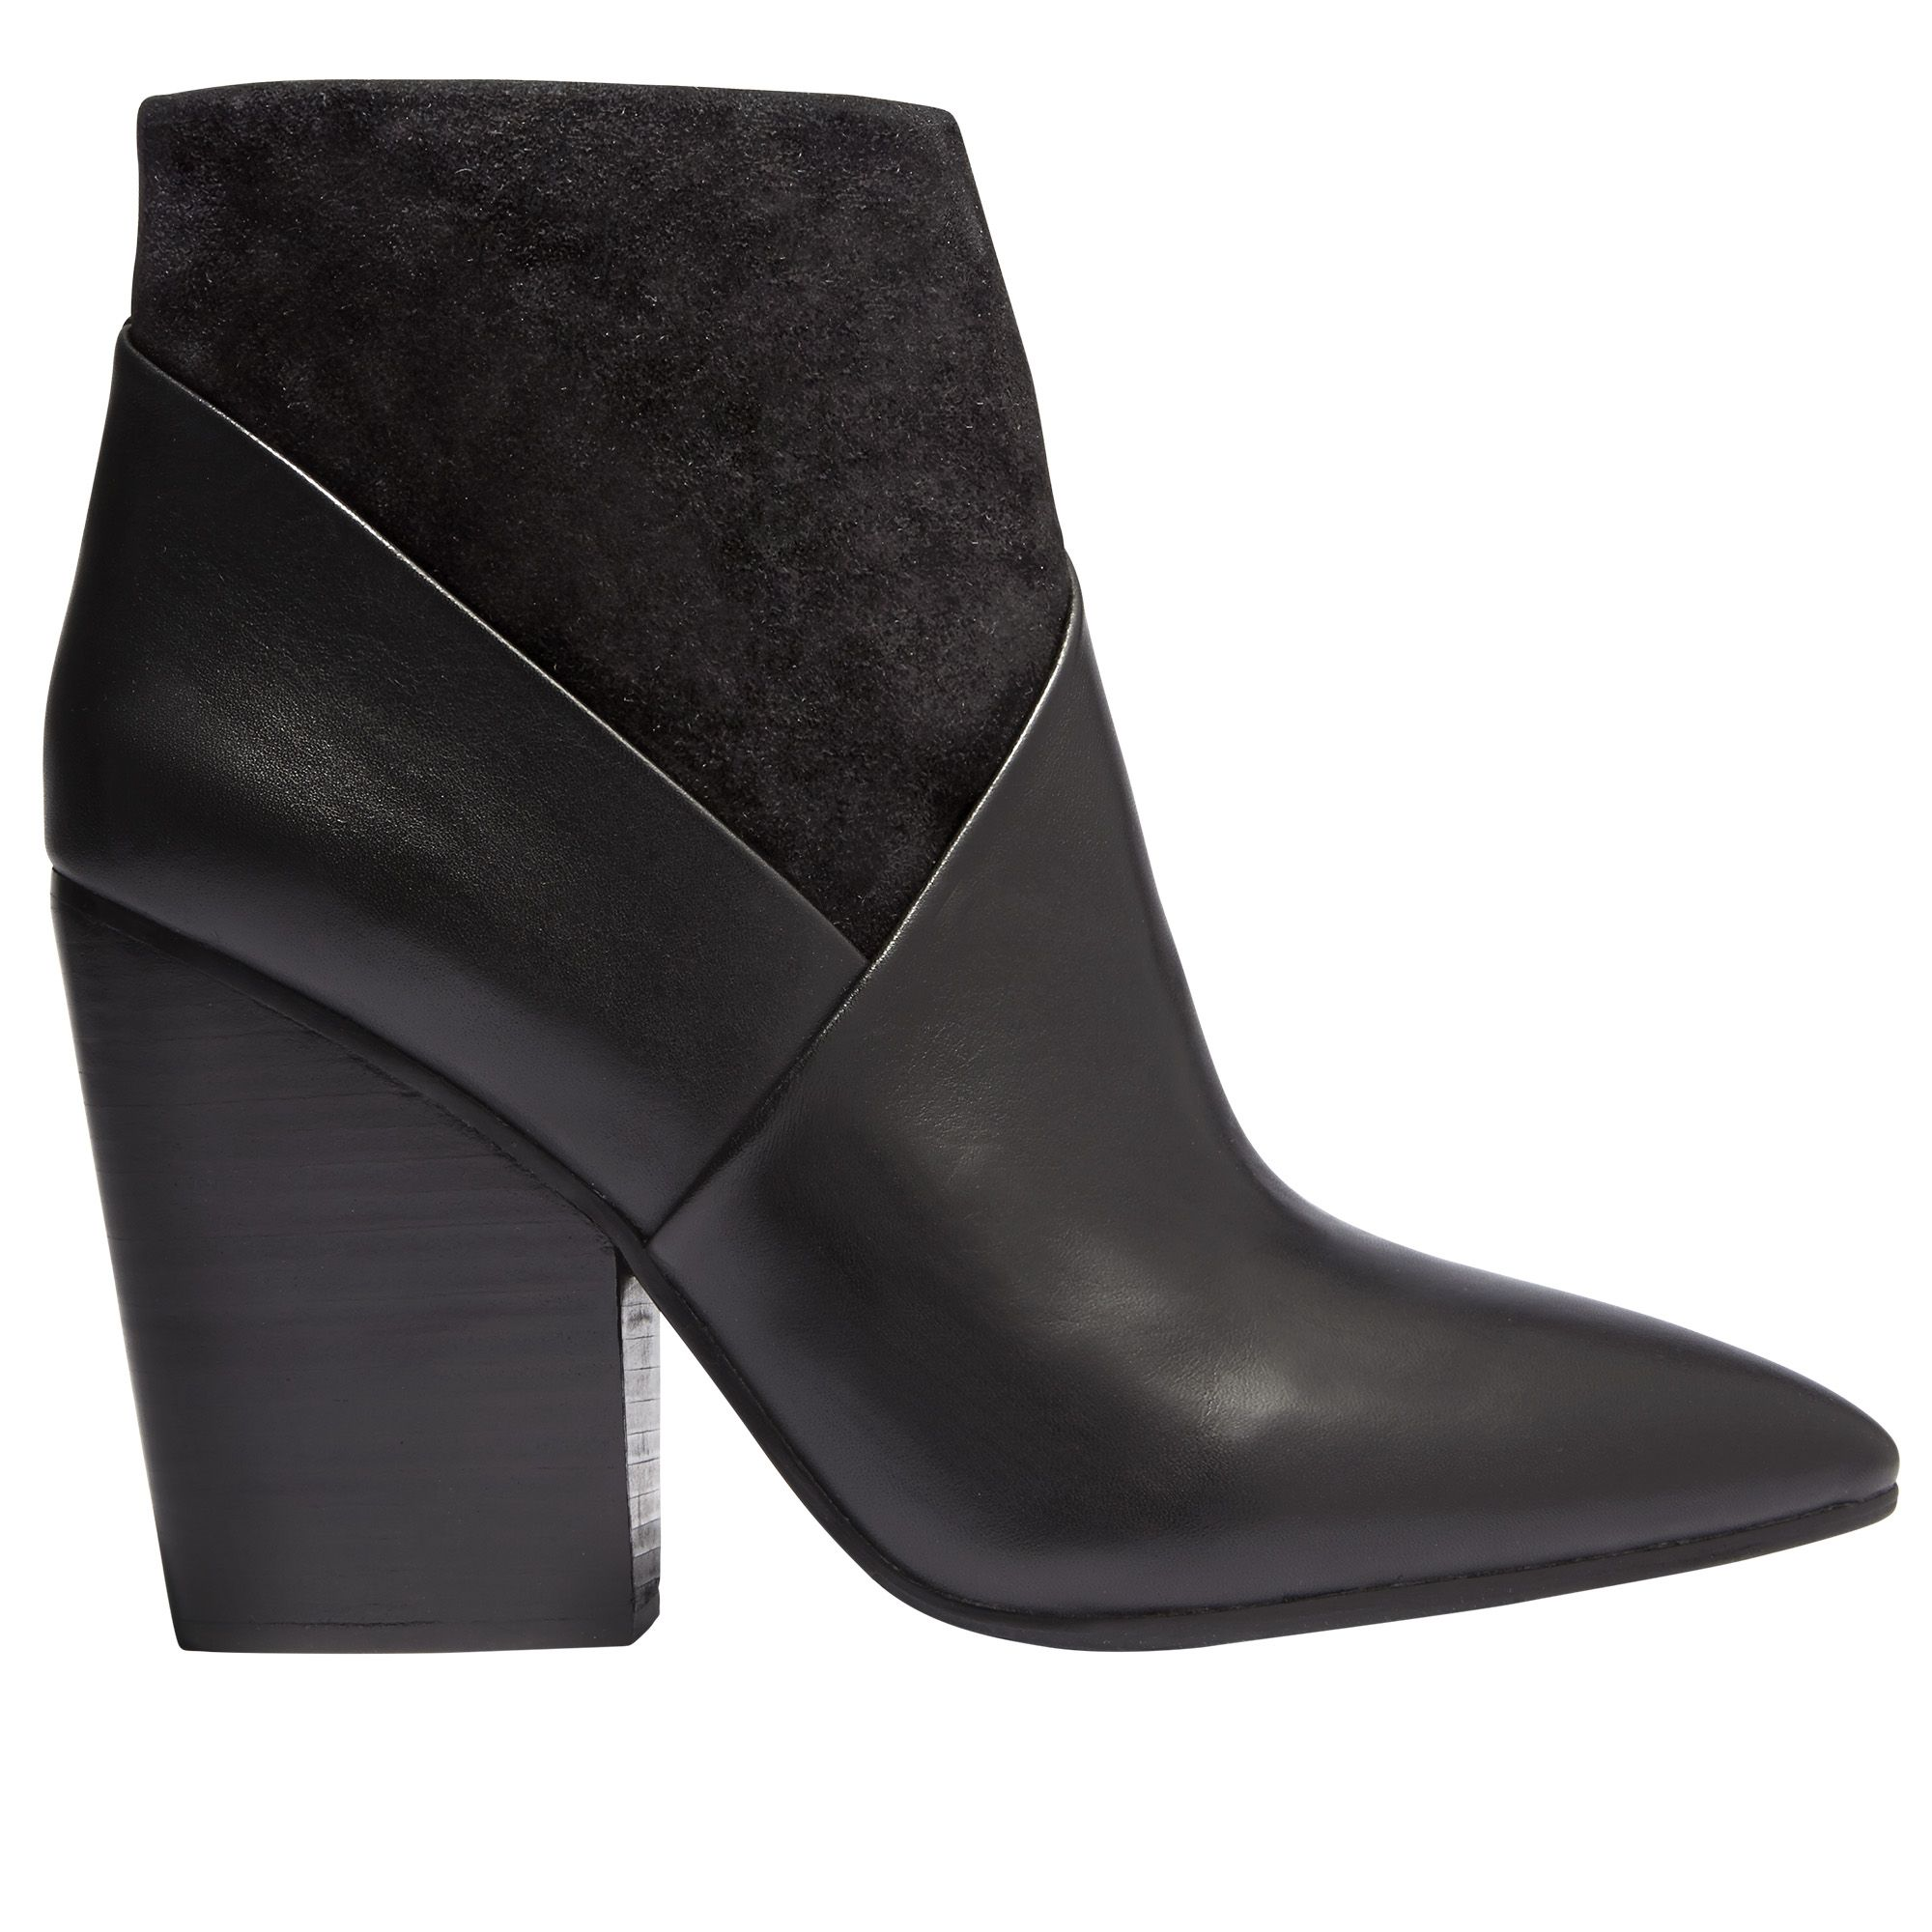 "<p><strong>Vince Camuto  </strong>booties, $169, <a href=""http://www.vincecamuto.com/boots-booties-shoes/"" target=""_blank"">vincecamuto.com</a>.</p>"